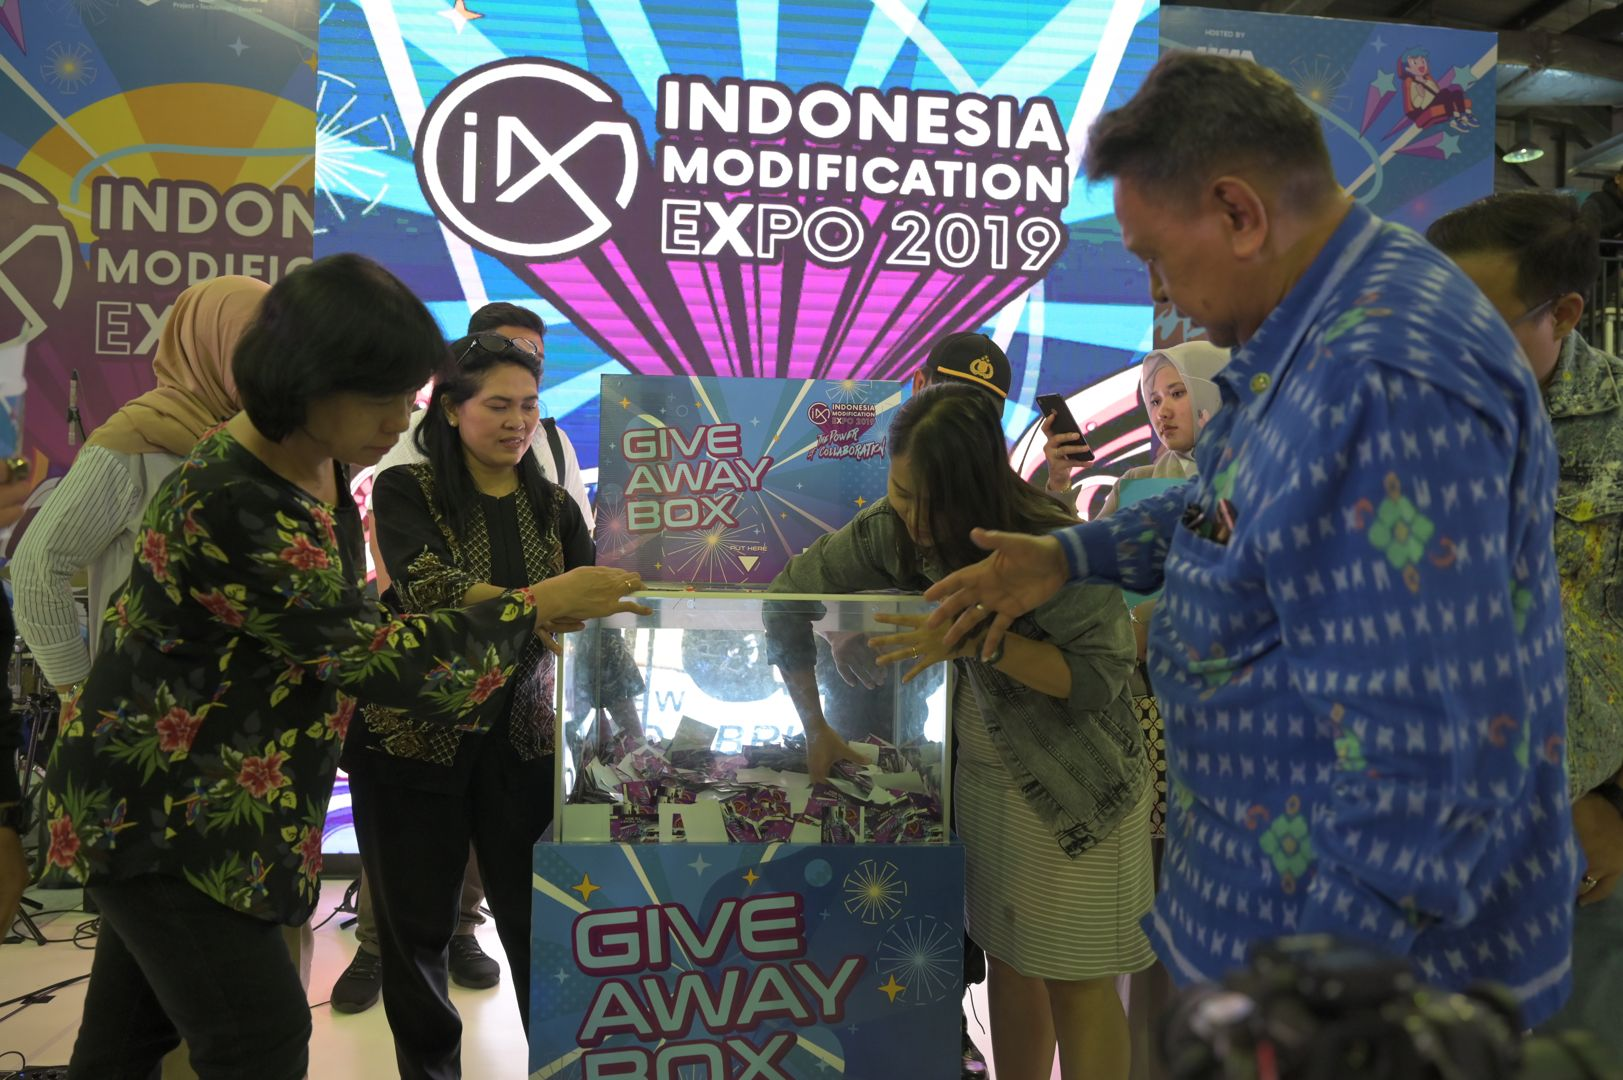 Imx - Indonesia modification expo giveaway 2019 (11)